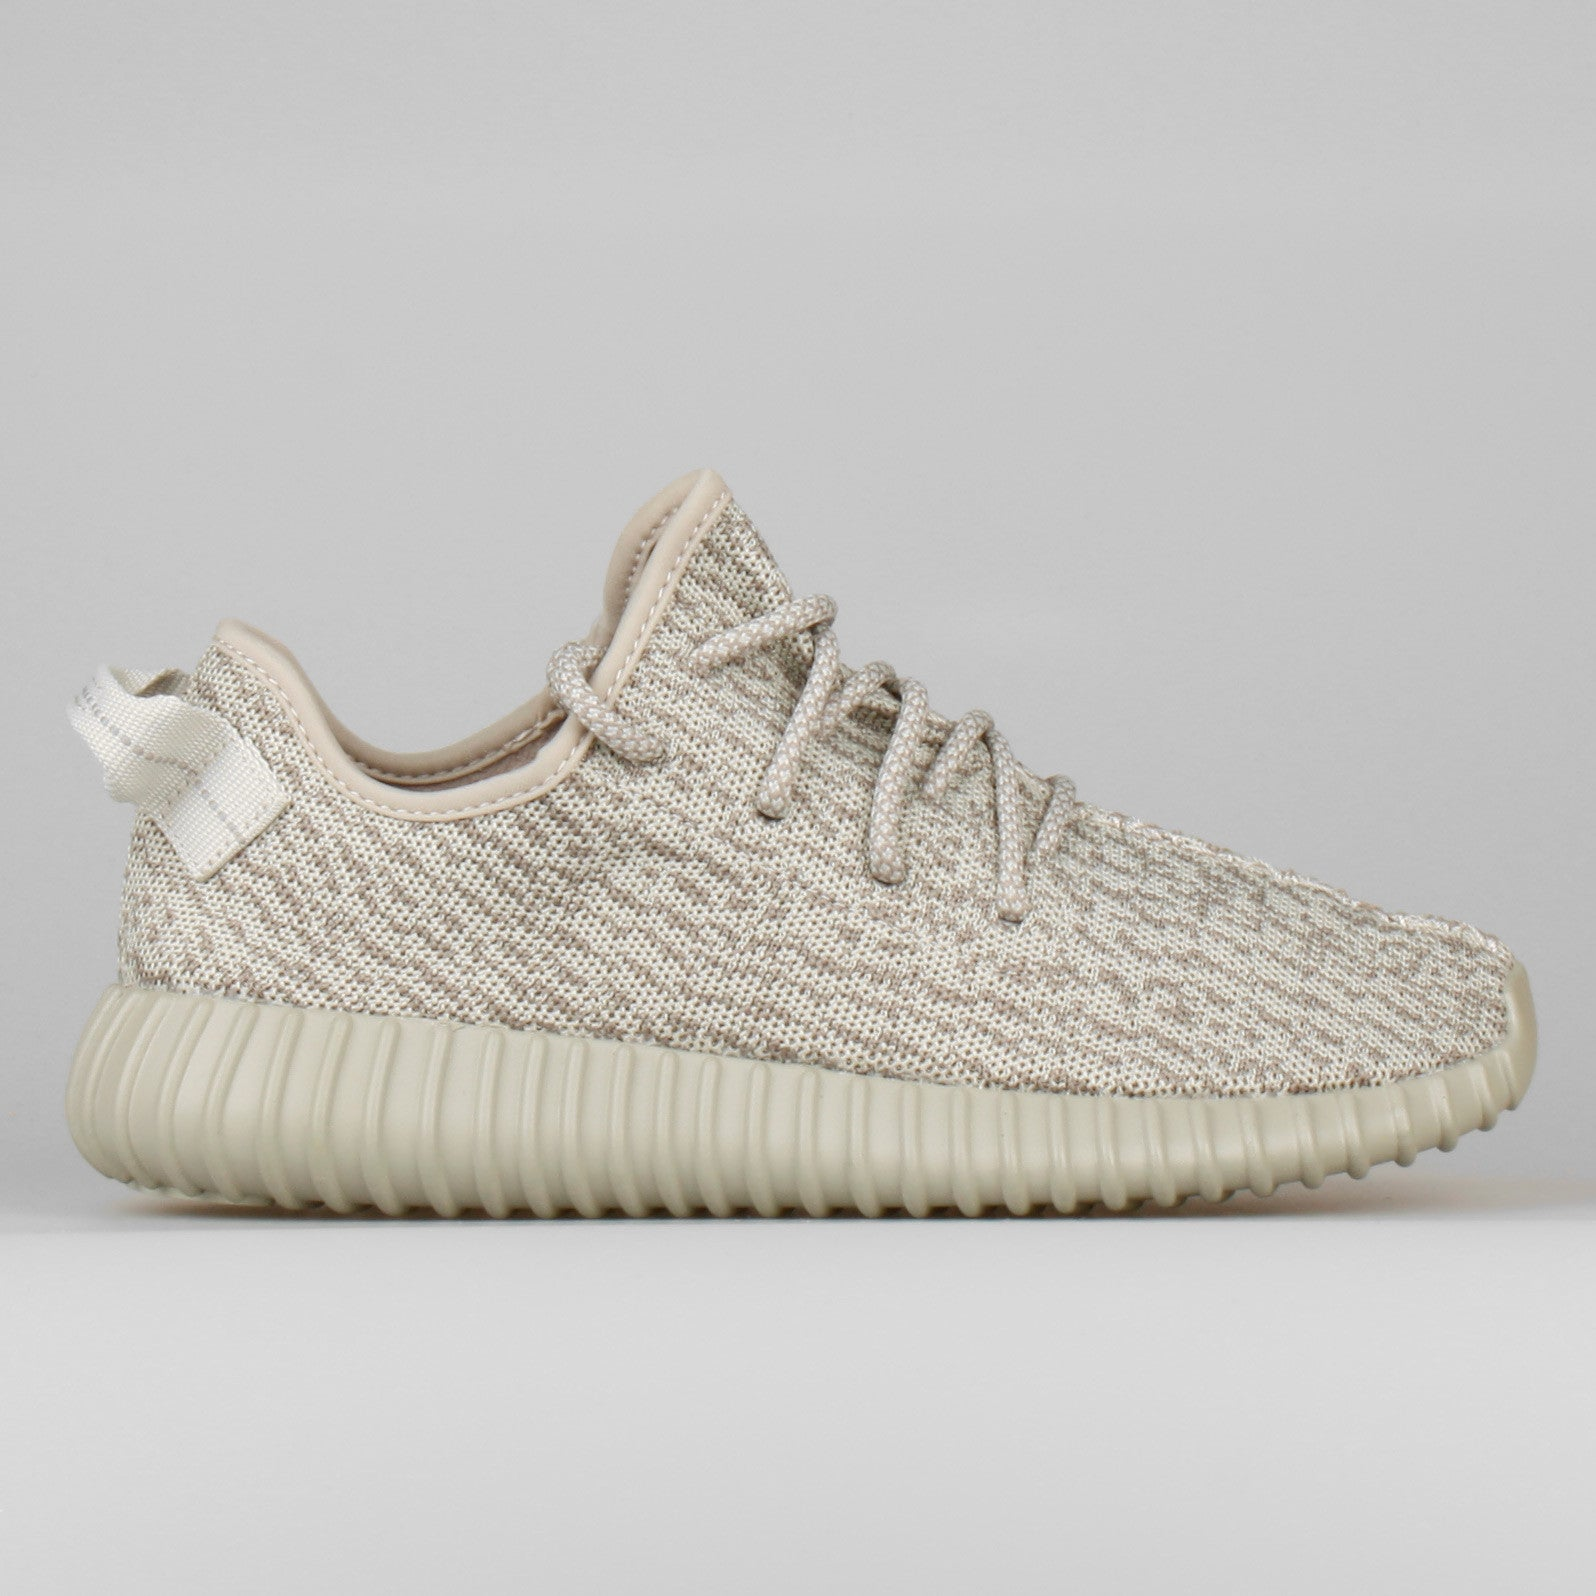 adidas Yeezy Boost 350 V2 Triple White Release Date